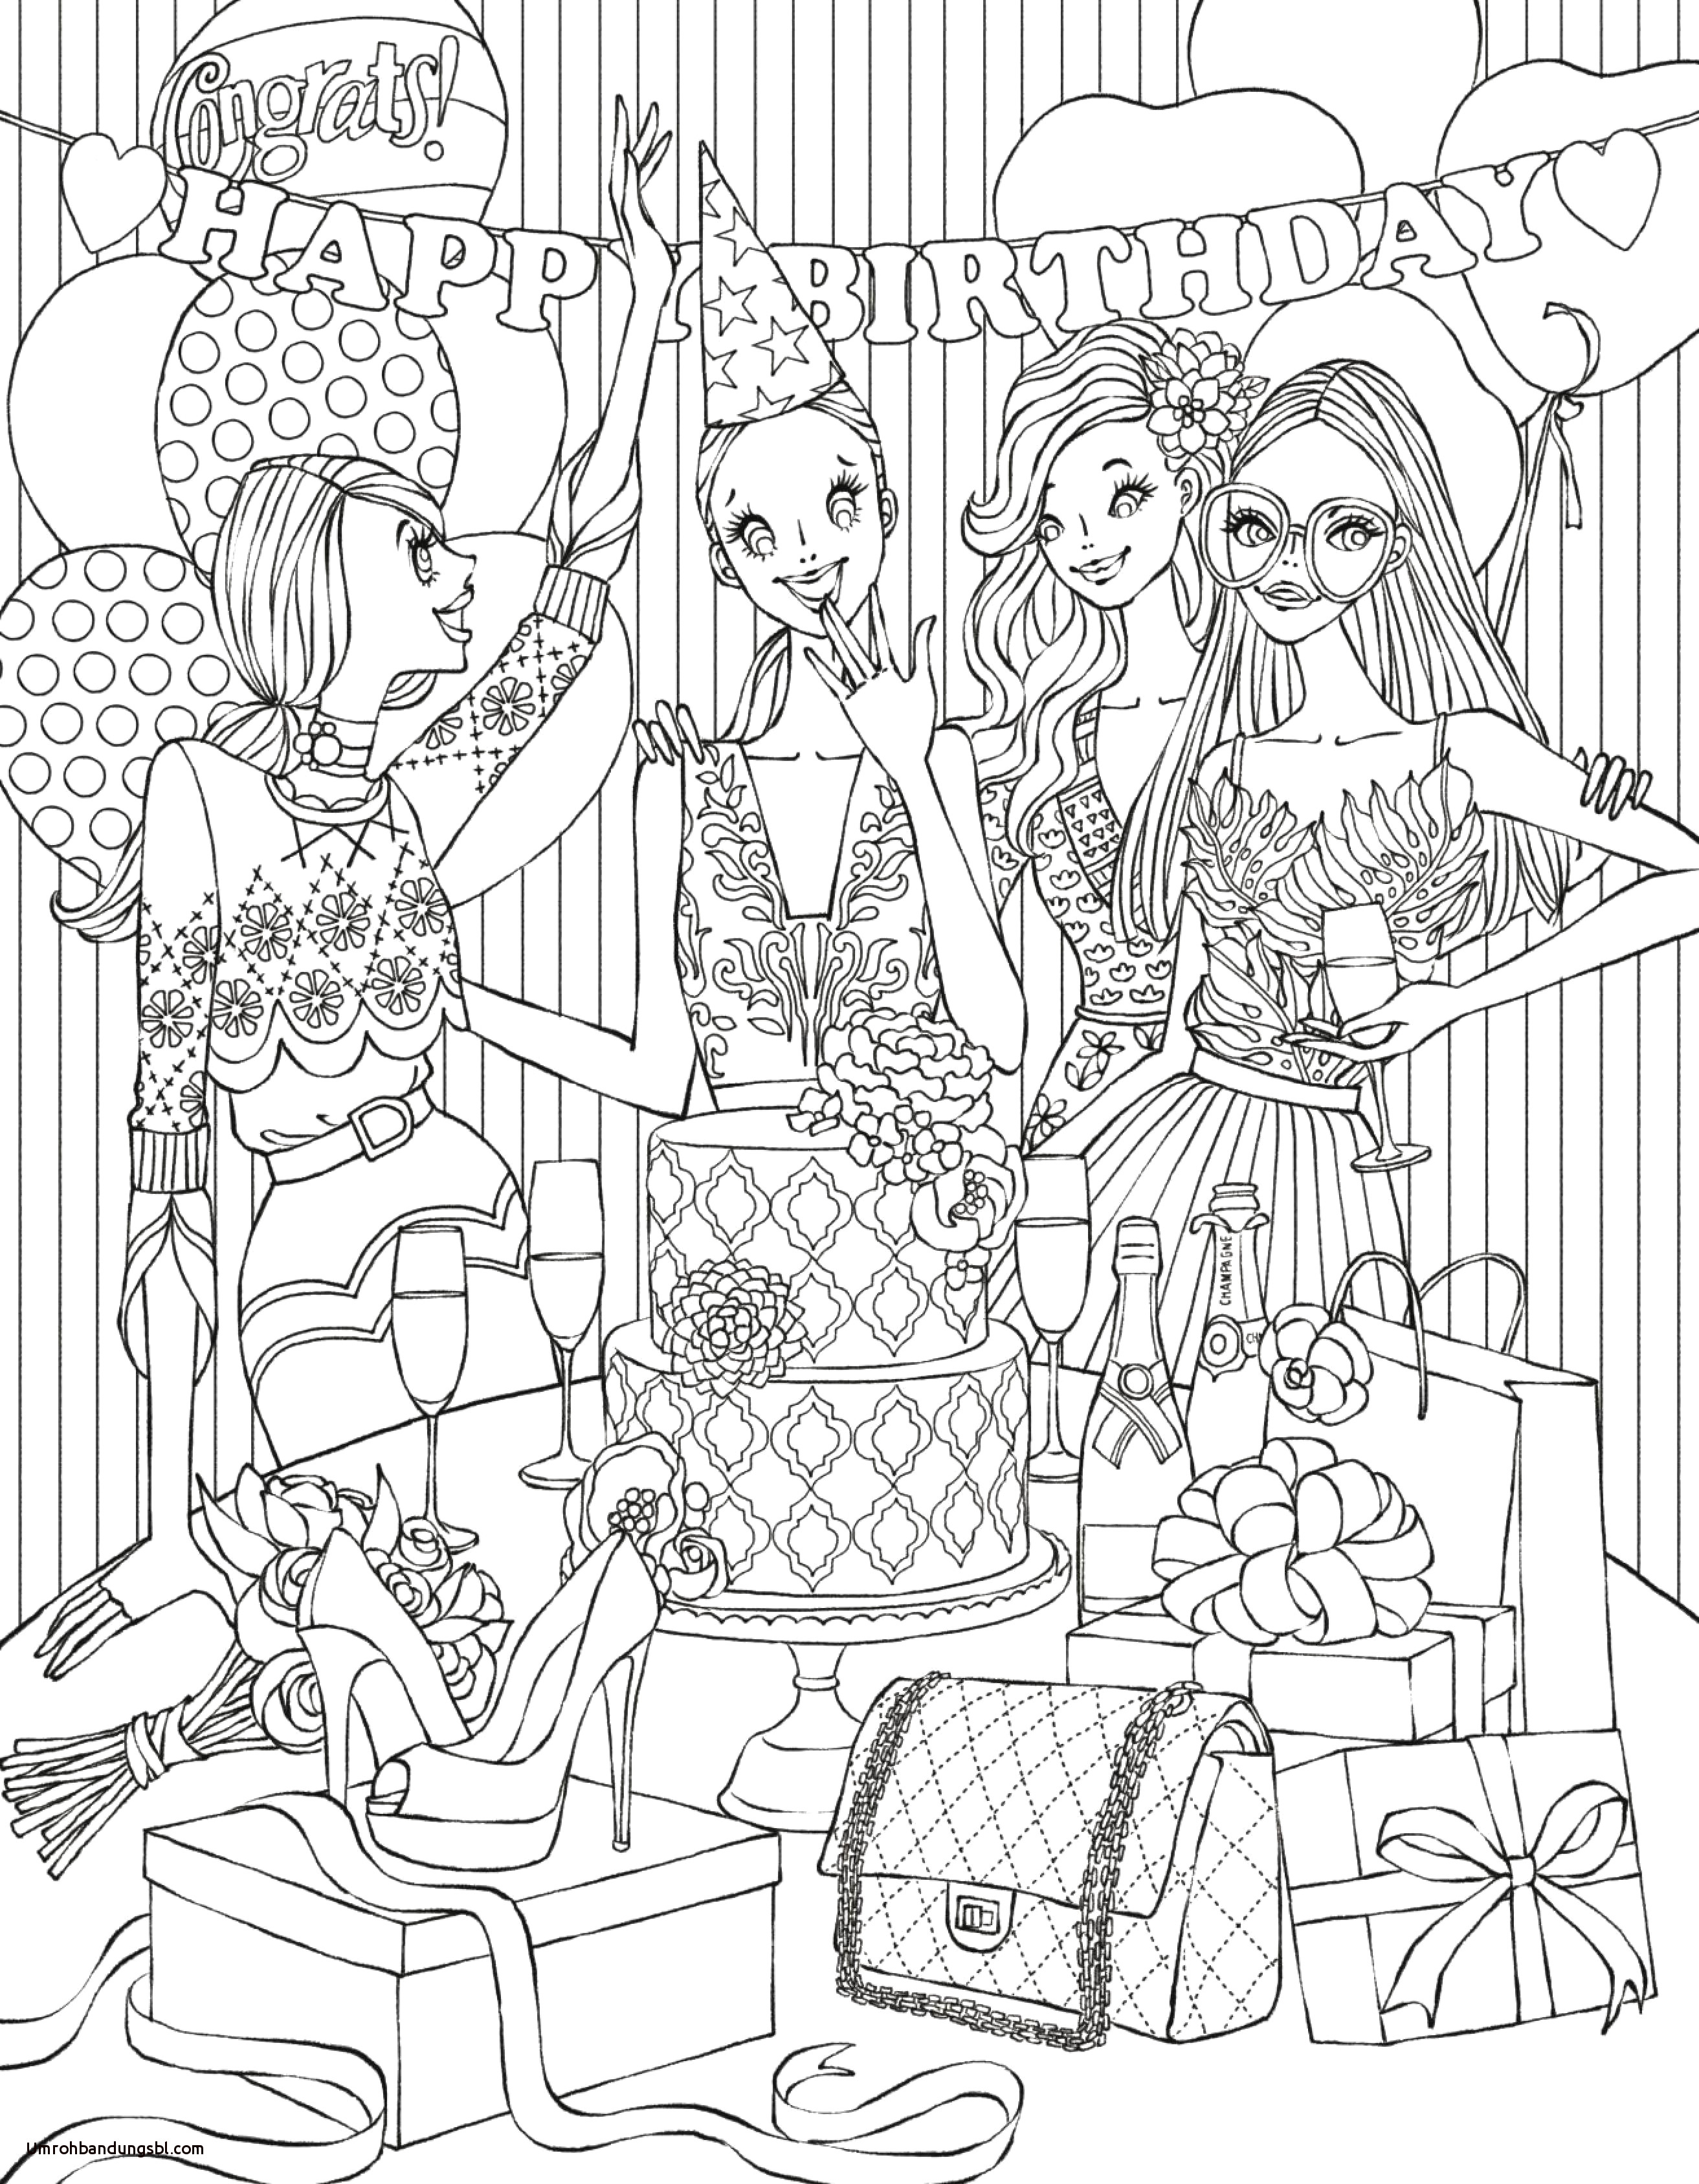 Book Of Life Coloring Pages  Gallery 20c - To print for your project